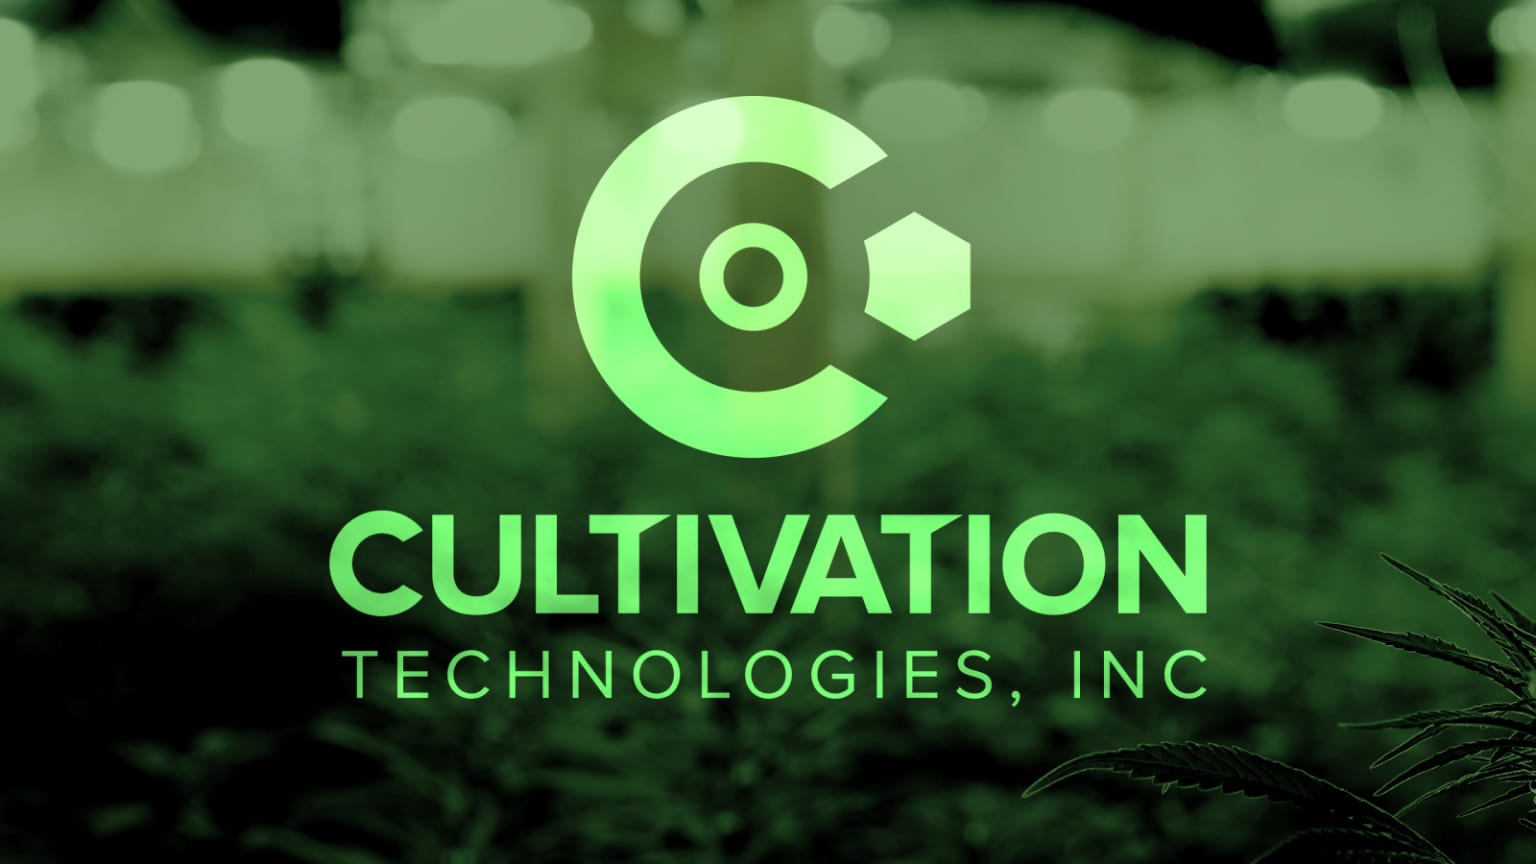 Cultivation Technologies, Inc